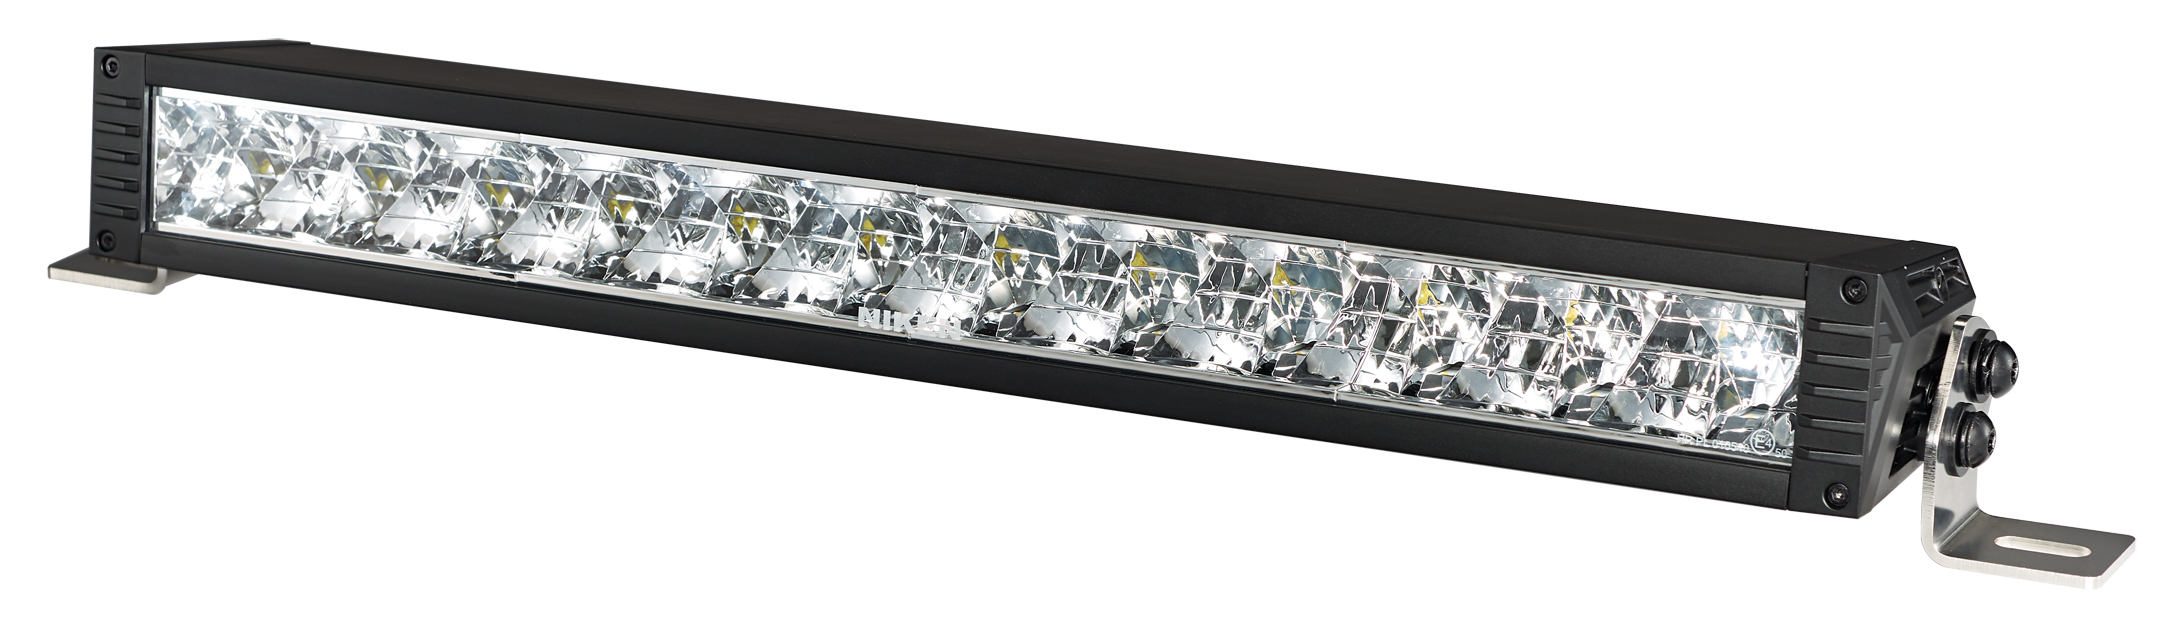 Agricultural / Tractor LED Light Bar for Lighting Series made by NIKEN Vehicle Lighting Co., LTD. 首通股份有限公司 - MatchSupplier.com